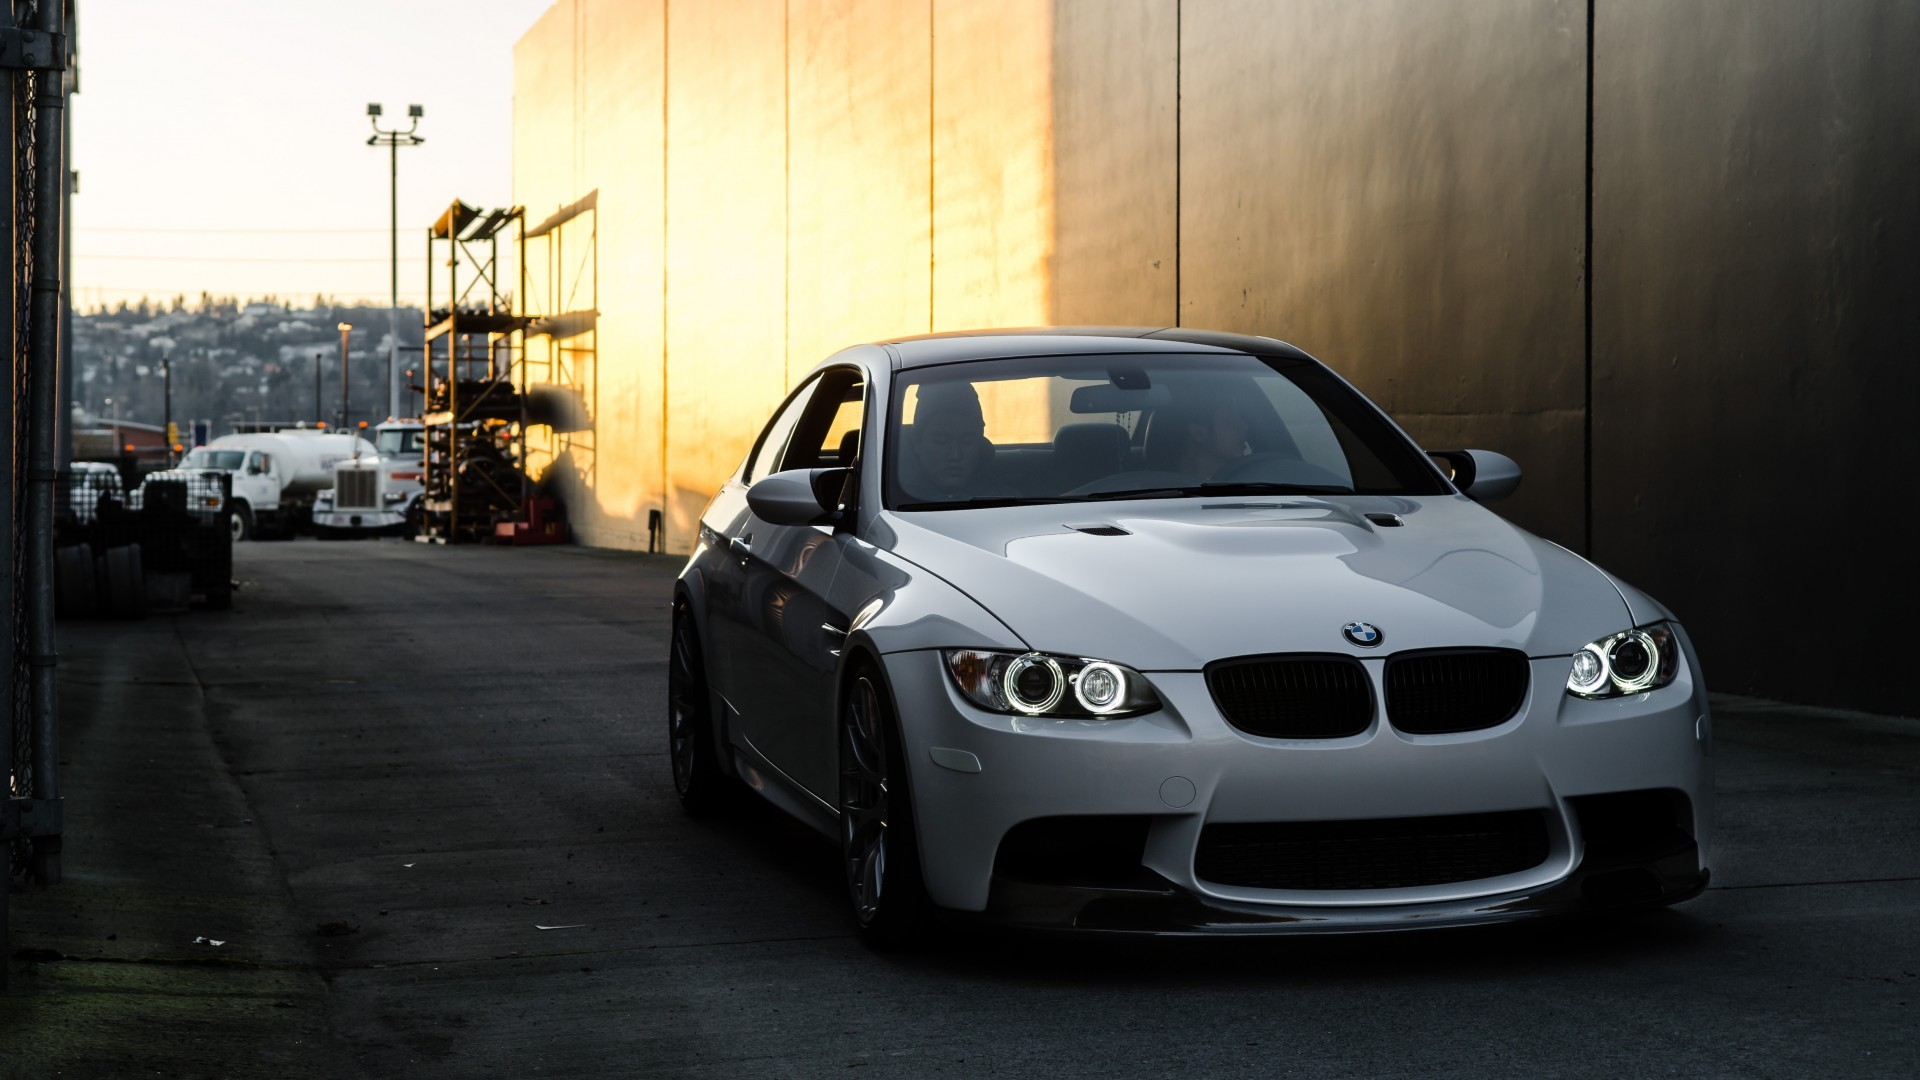 1920x1080 BMW E92 M3 | BMW M3 | Pinterest | BMW, BMW M3 And Bmw